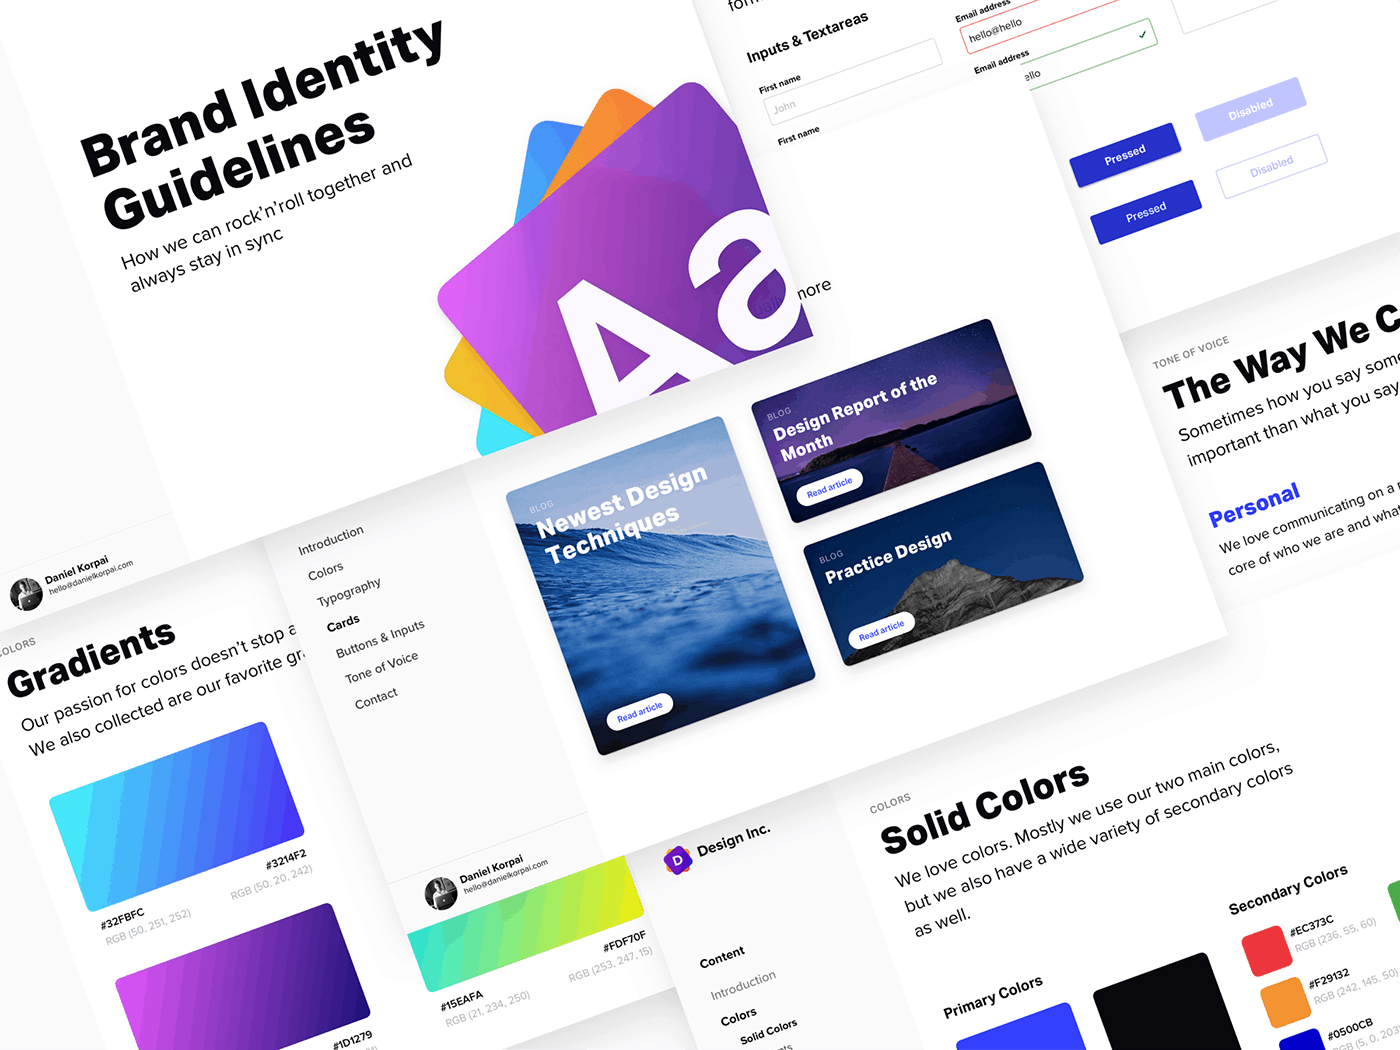 Brand Identity Guidelines 2.0 from UIGarage